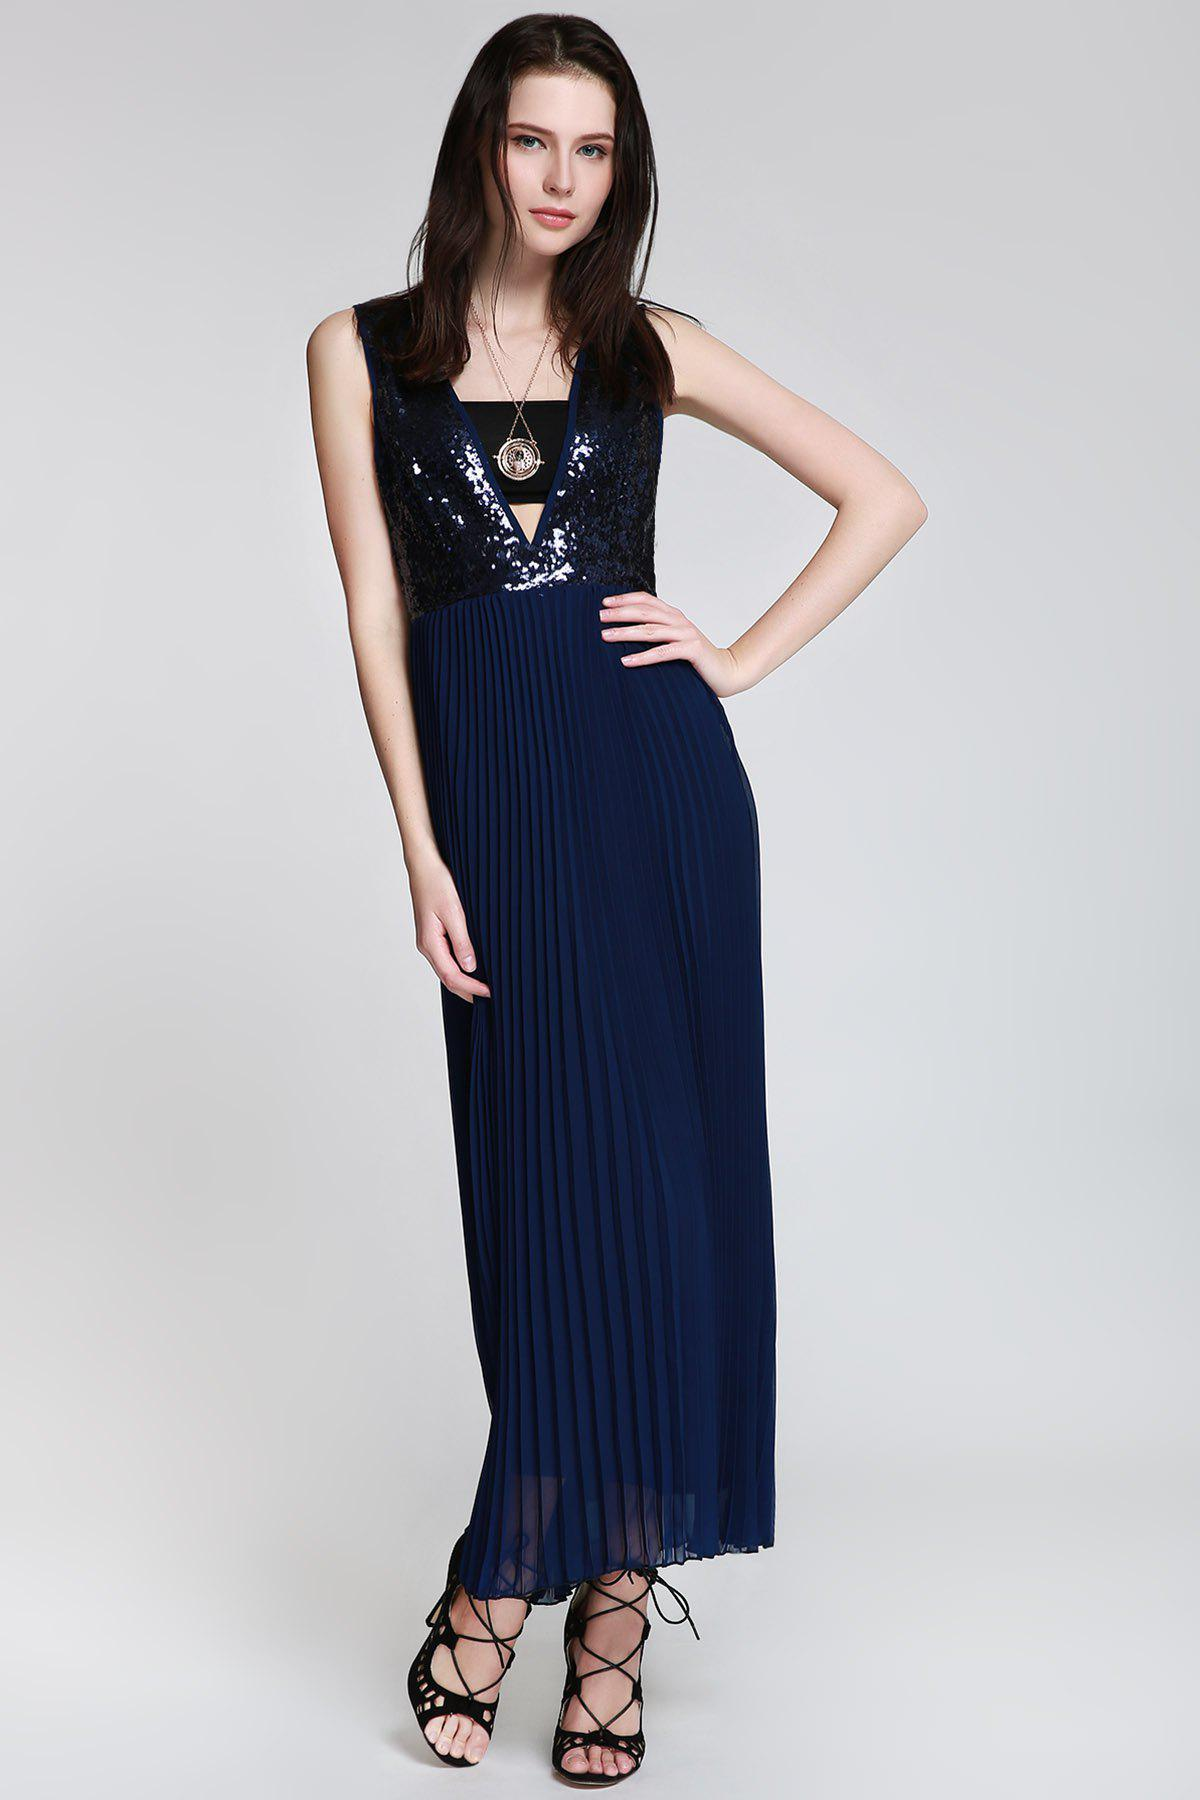 Womens Sexy Style Deep V Neck Sequins Backless Sleeveless Dress For Women